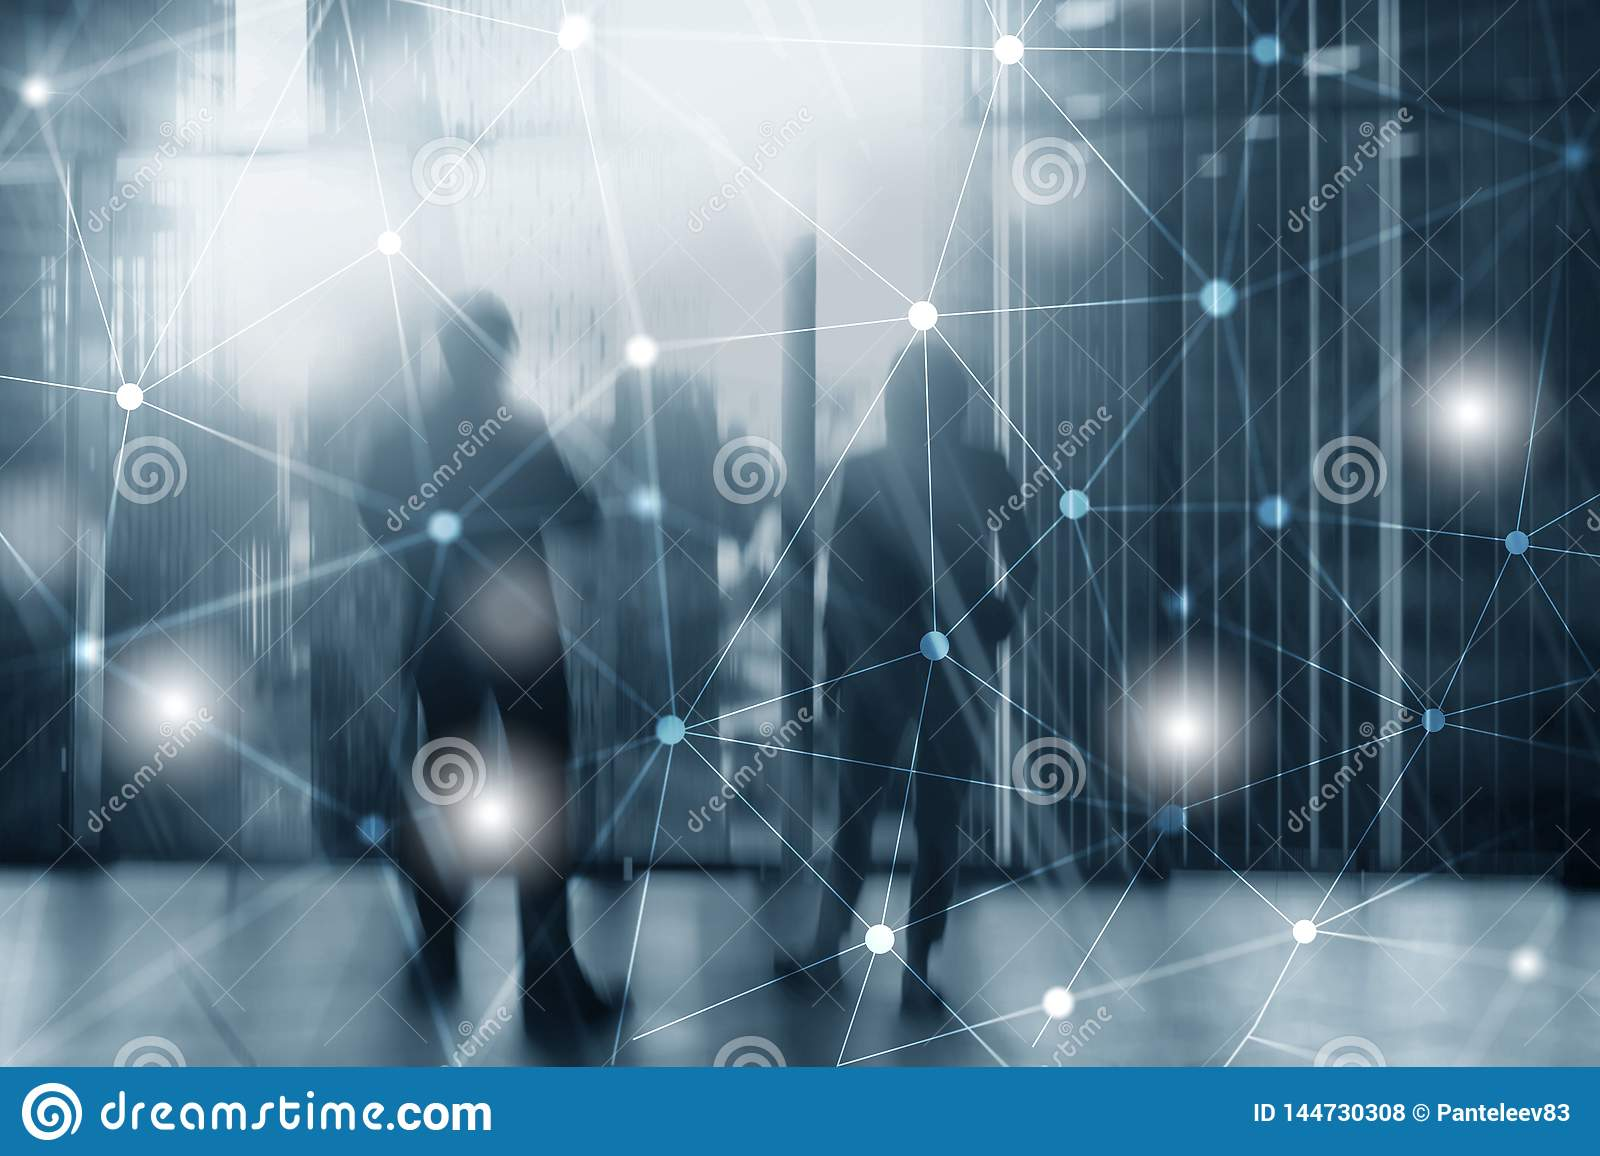 Silhouettes Of Business People Over Cityscape Background